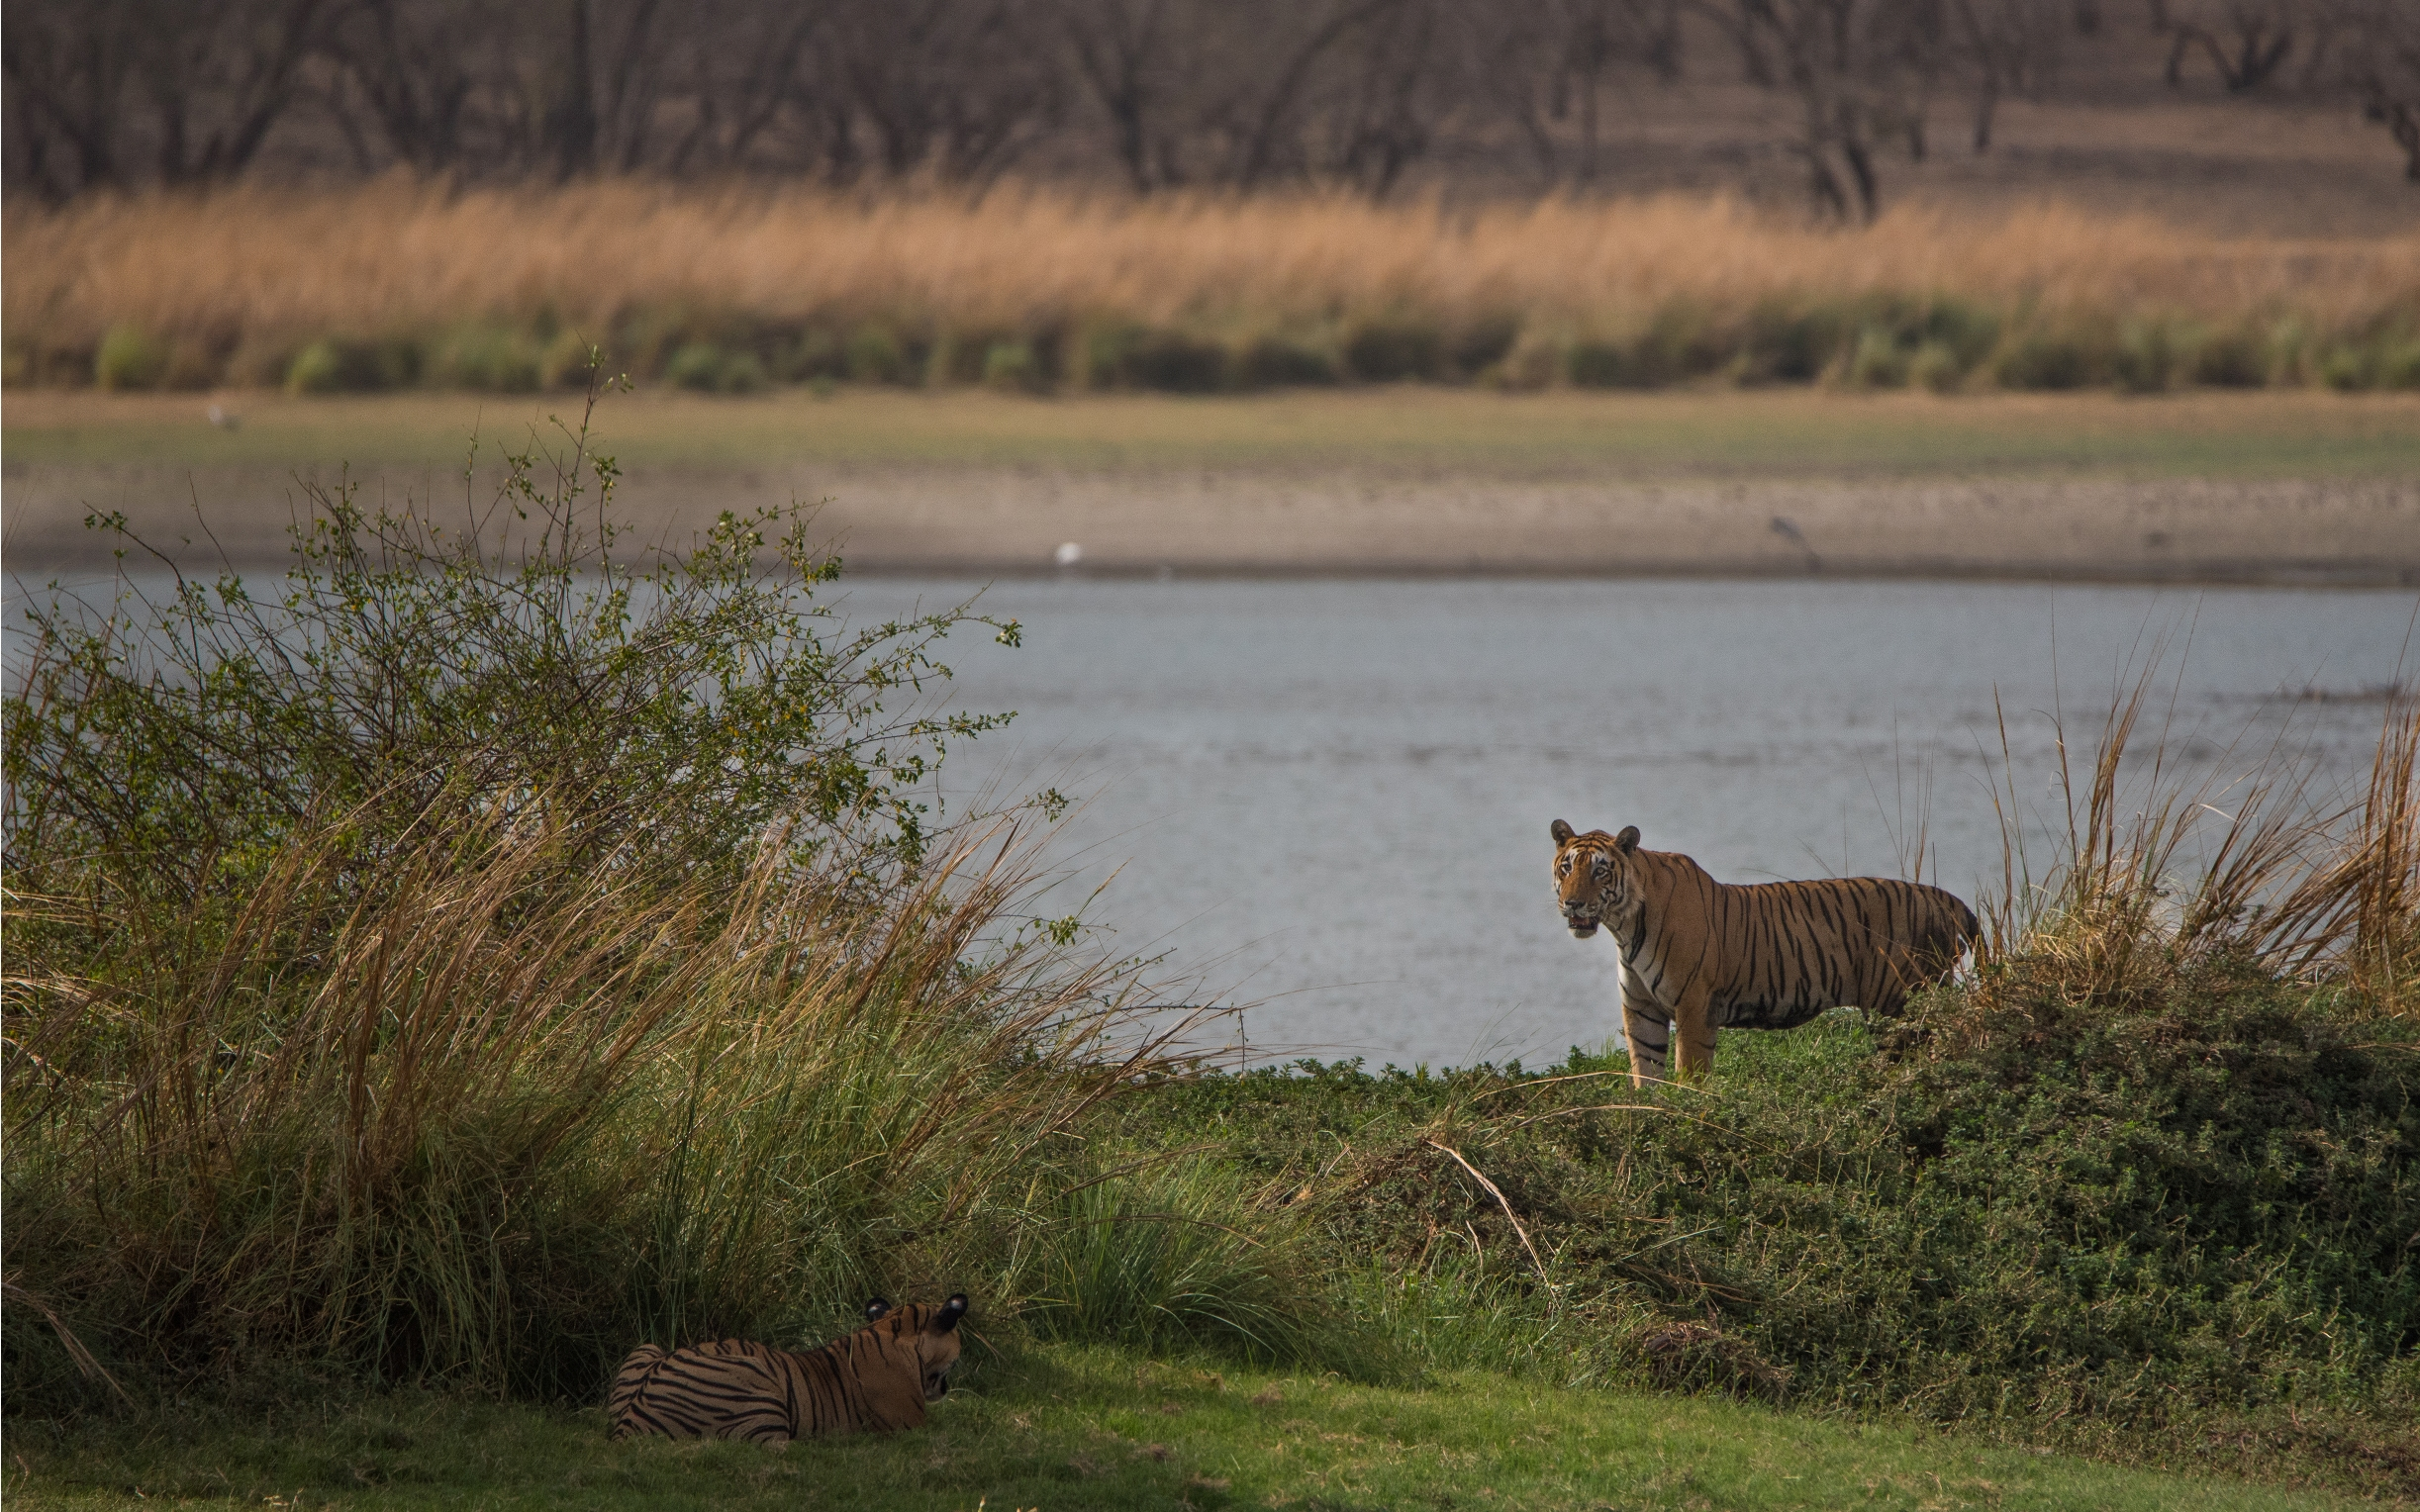 Father T28 (Starmale) and son T85 (Pacman) sizing up each other at Legendary Rajbaug Lake.